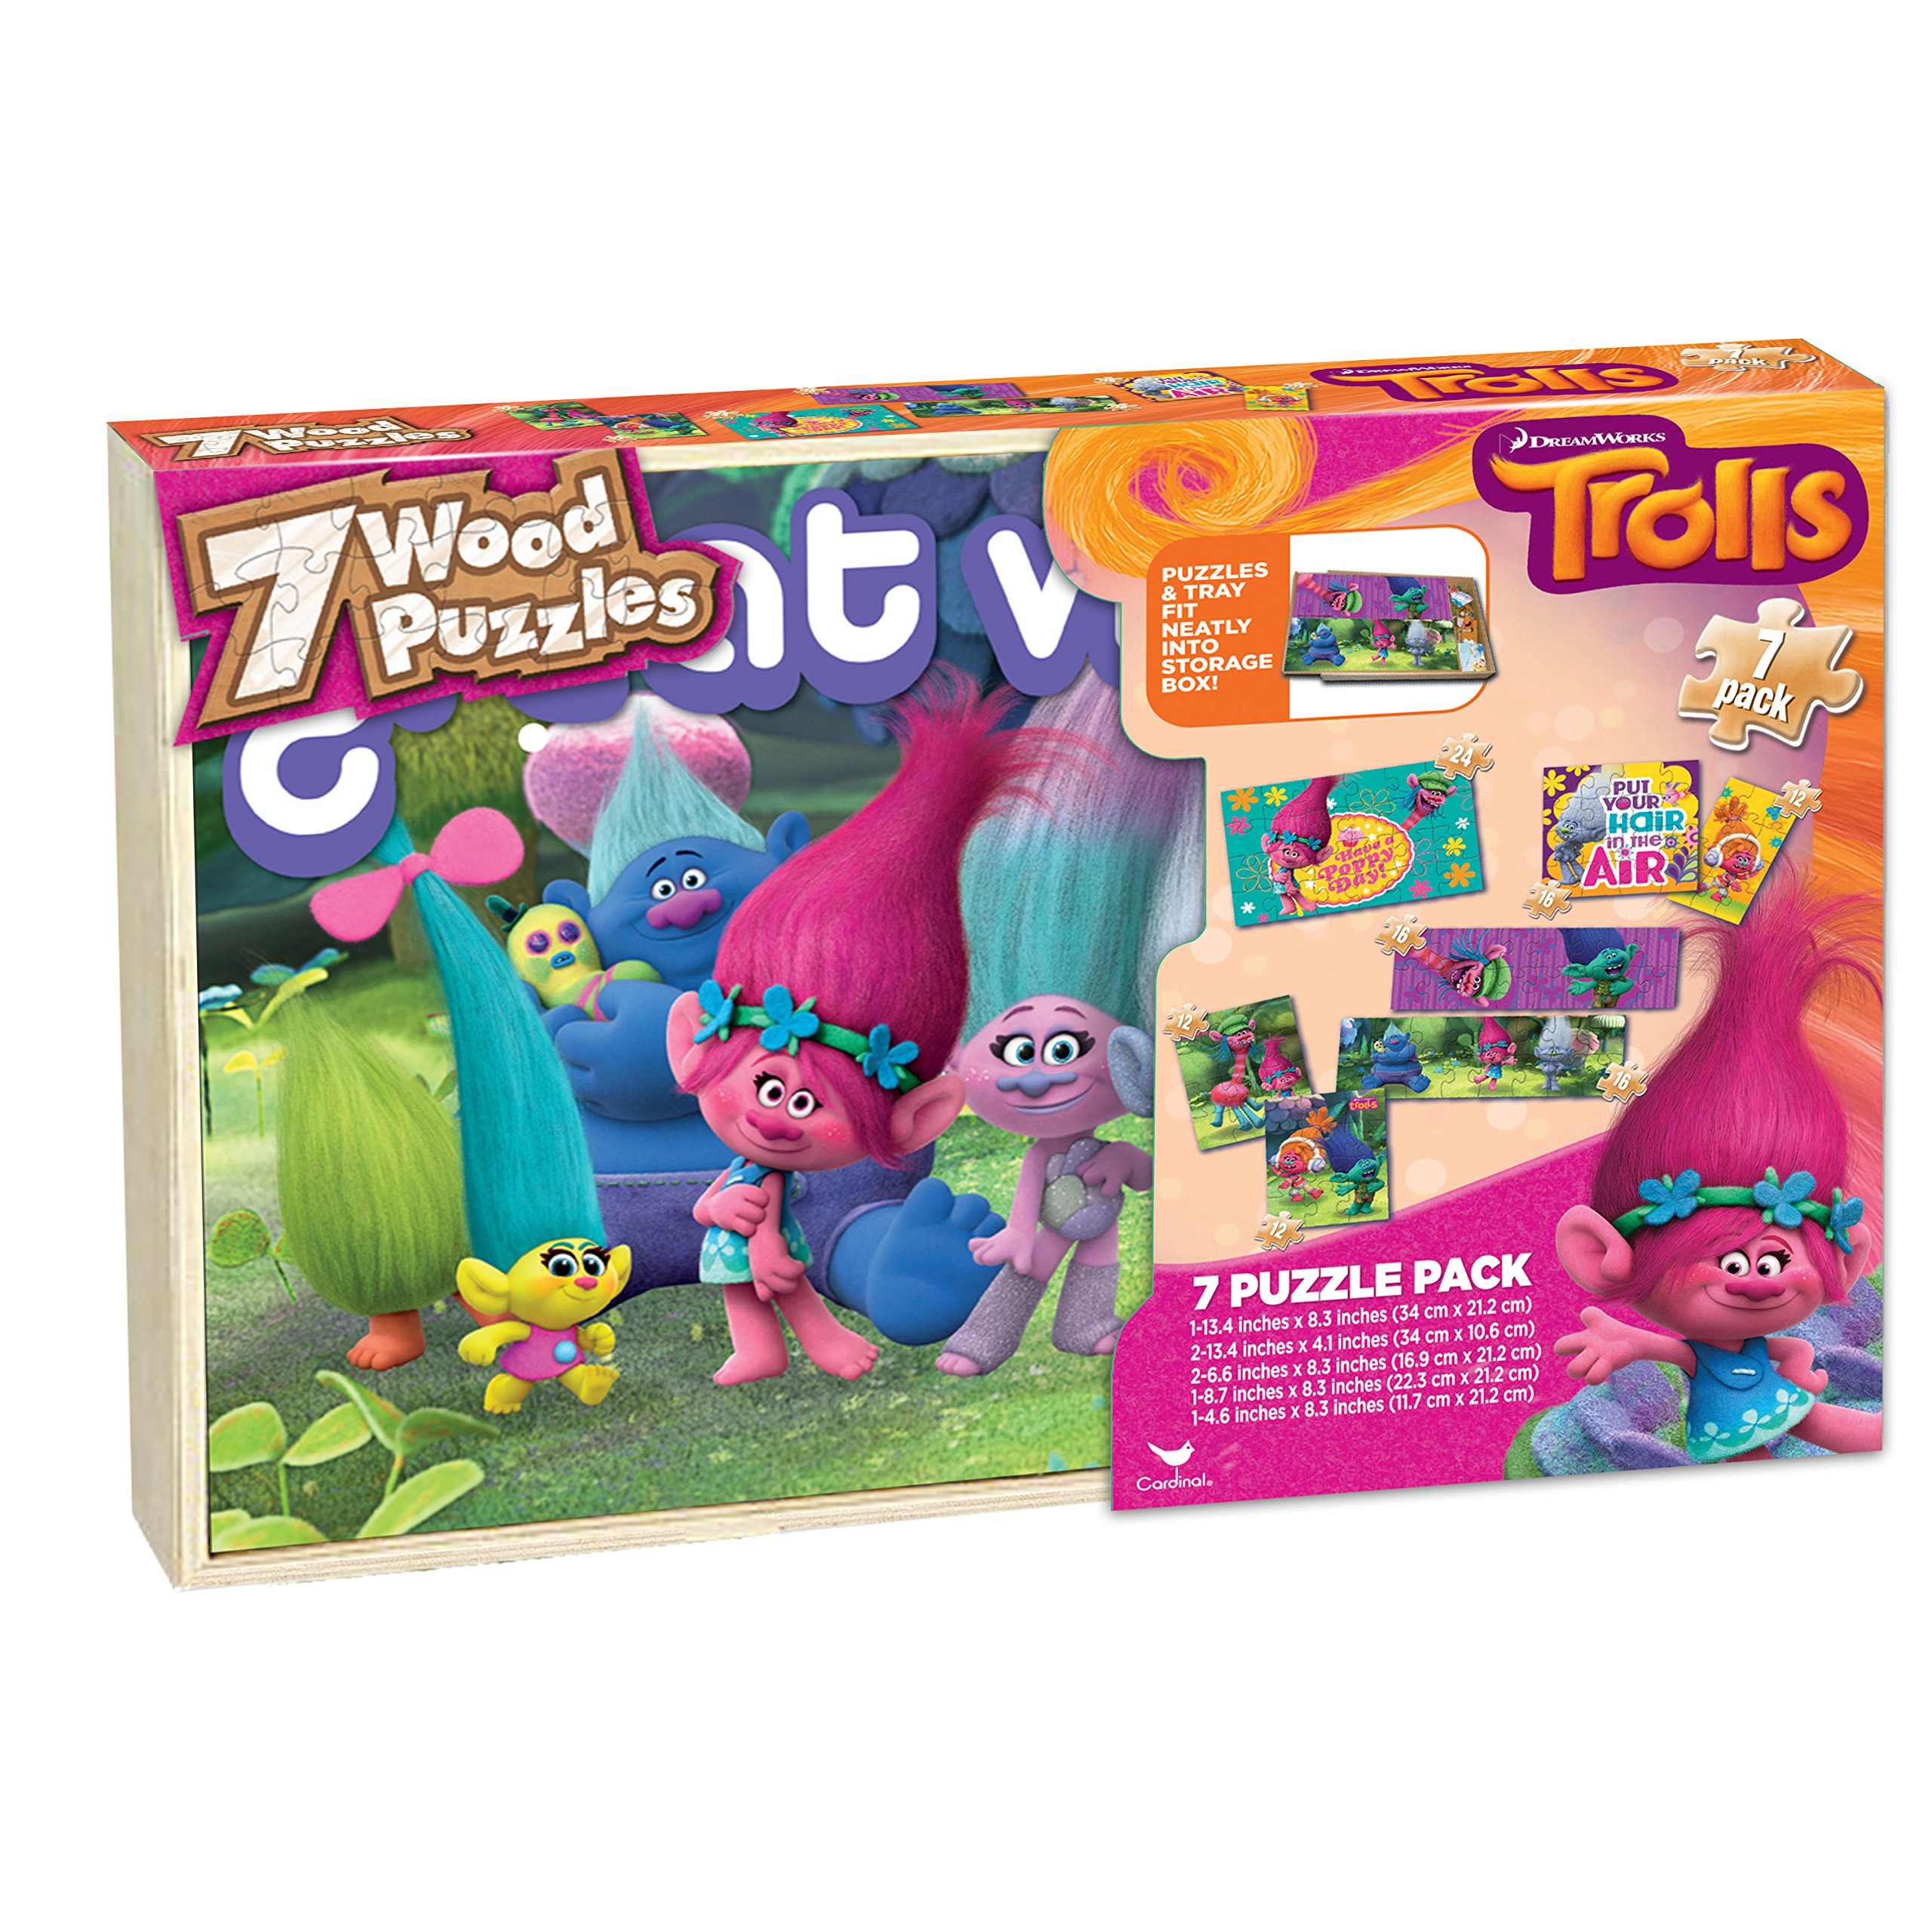 Trolls 7 Wood Puzzles In Wooden Storage Box (styles will vary)